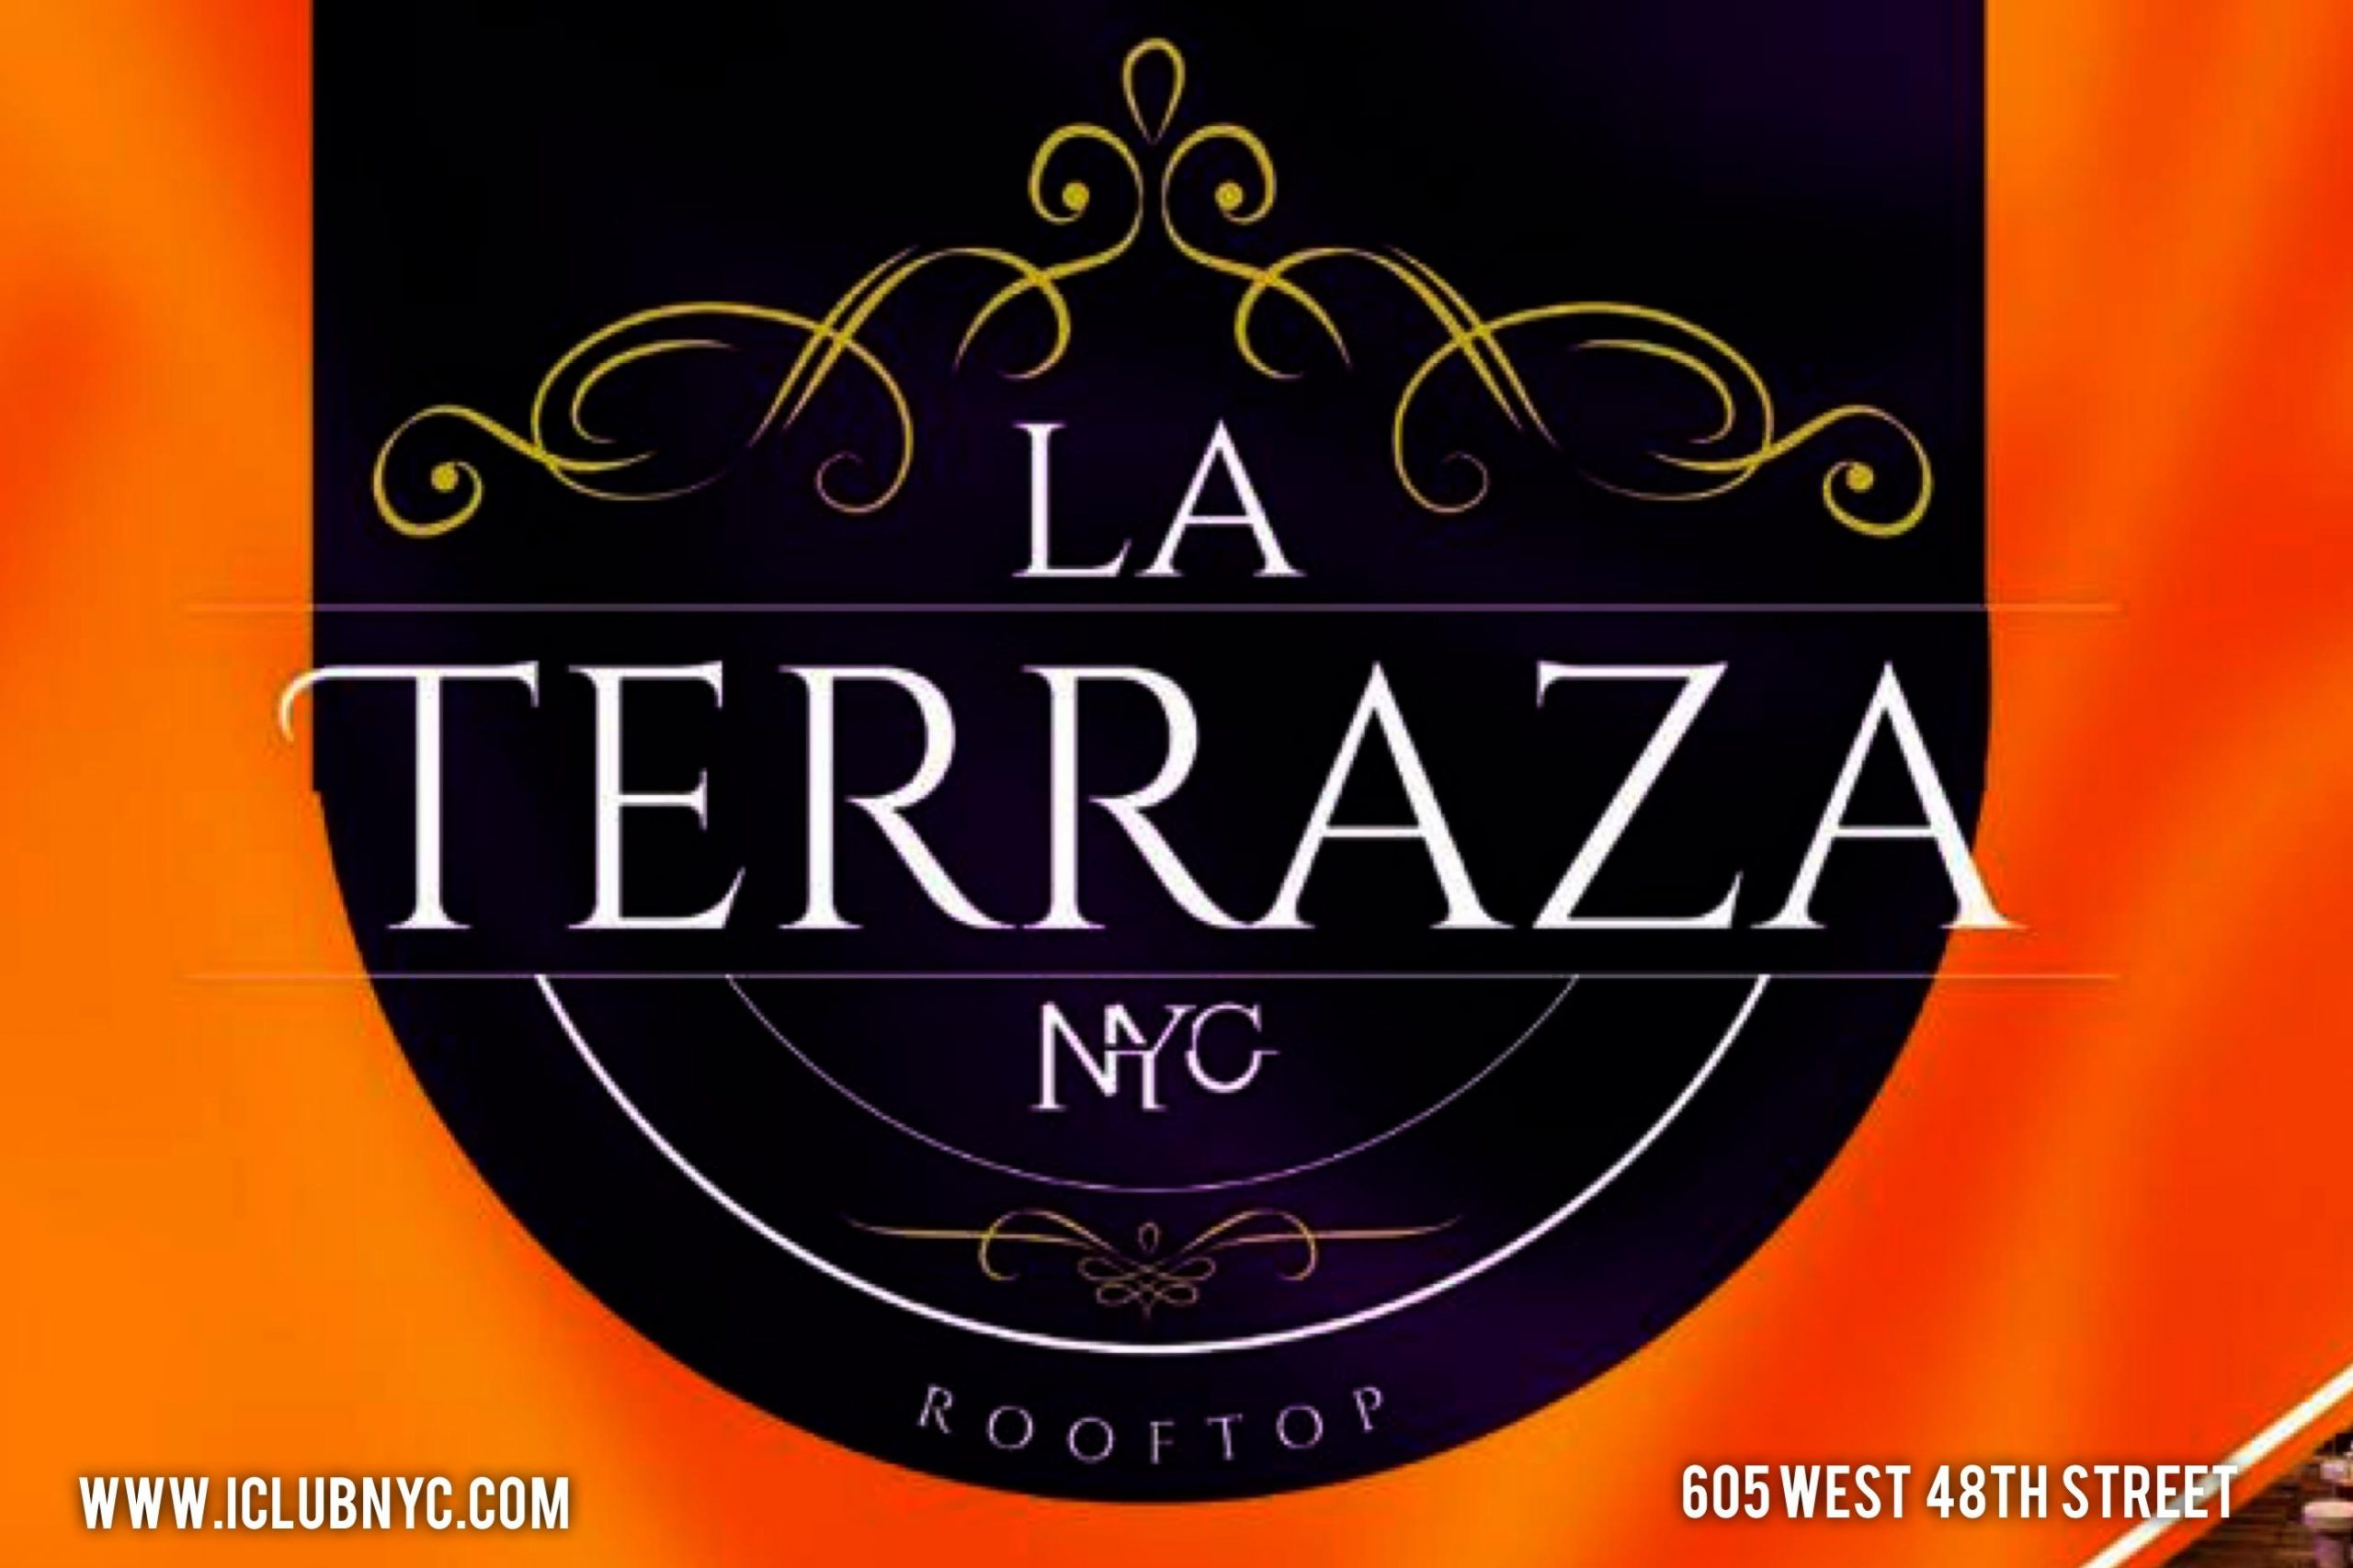 87913 image scaled - LA TERRAZA NYC #1 SATURDAY NIGHT LATIN PARTY | LATIN VIBES